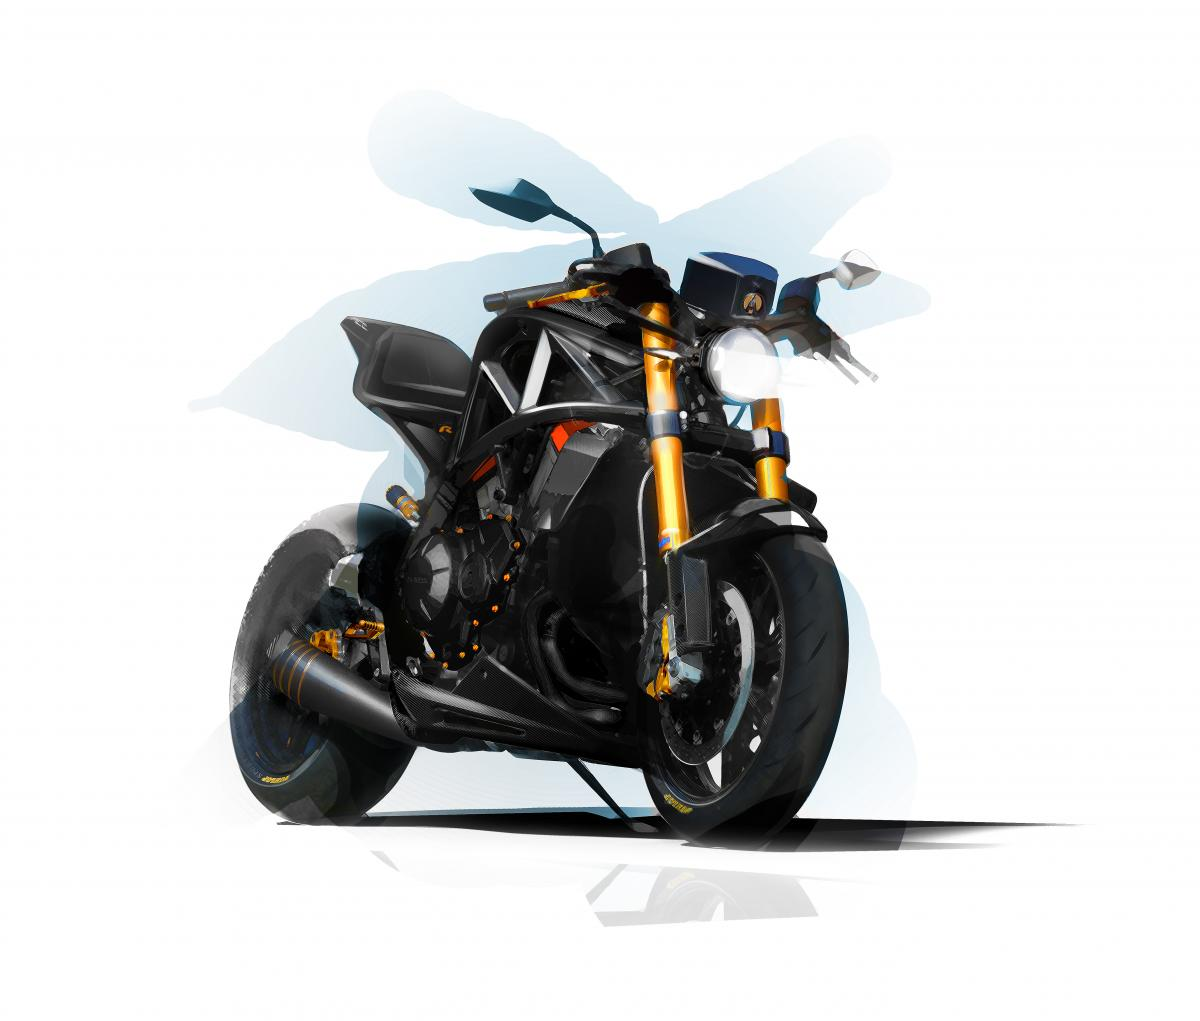 Ariel promises tuned 'R' edition of VFR1200-powered Ace